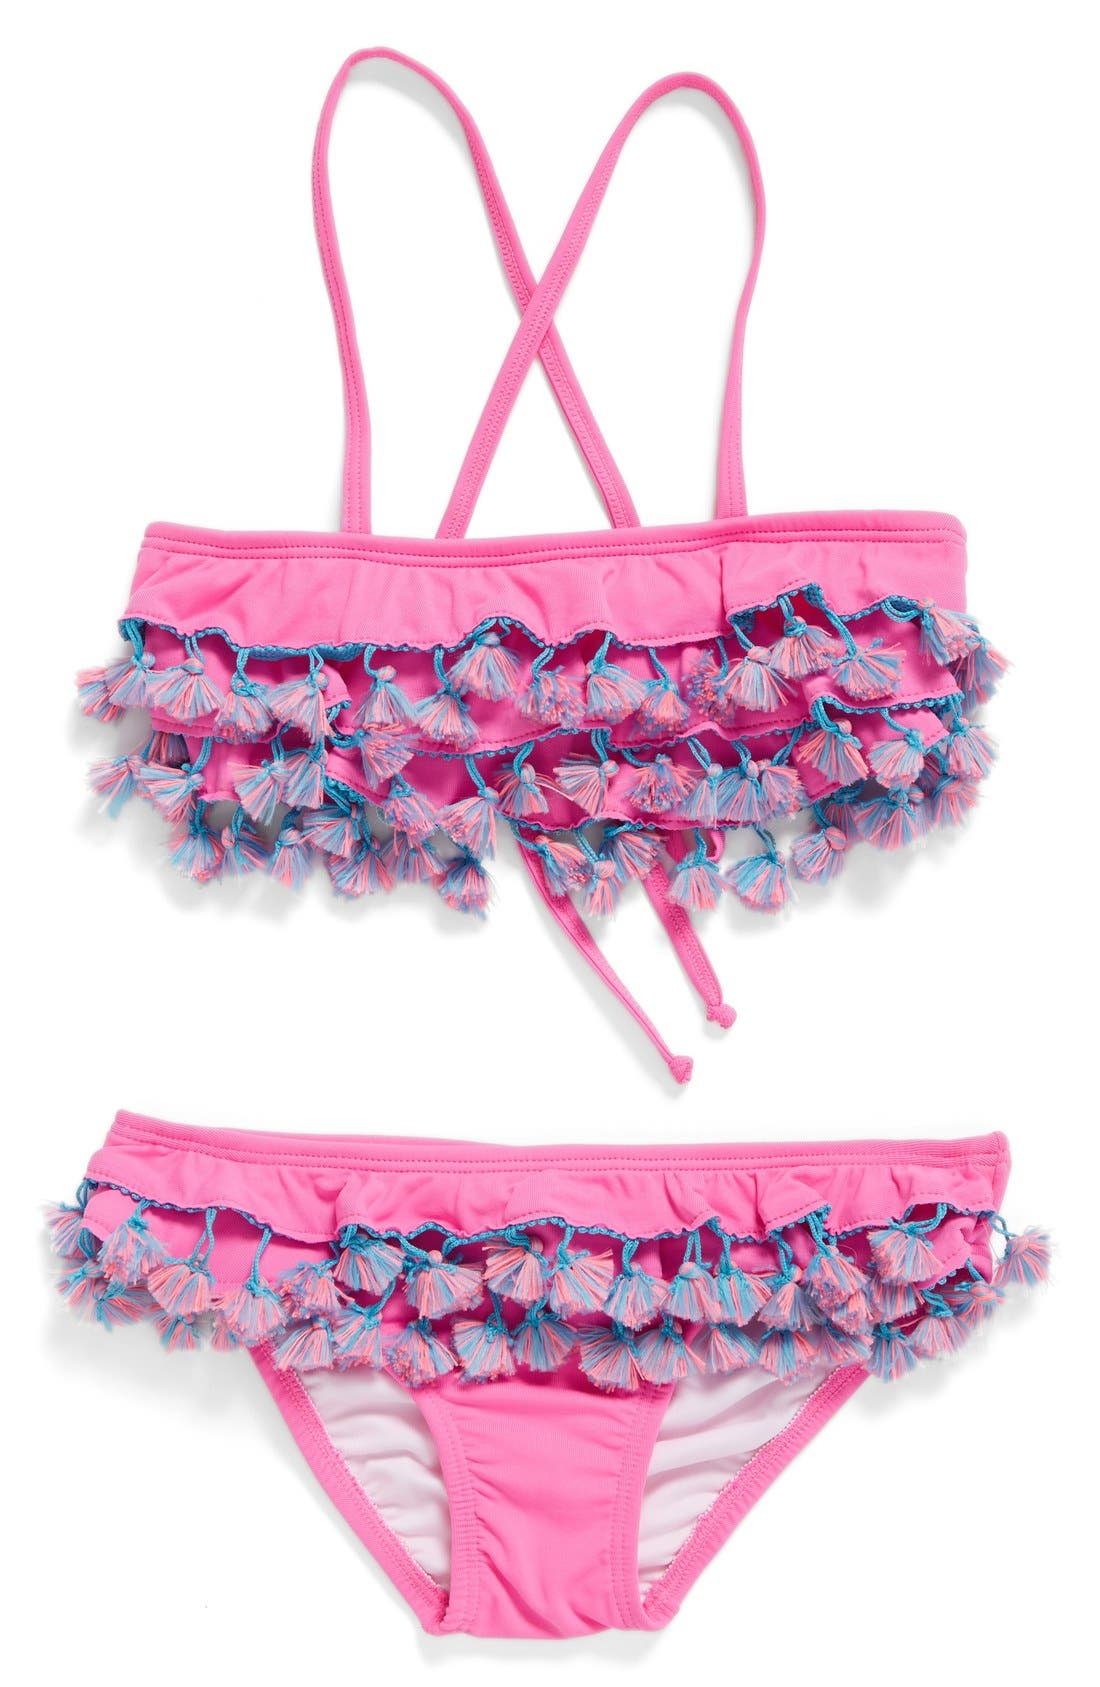 Main Image - PilyQ Tassel Ruffle Two-Piece Swimsuit (Big Girls)